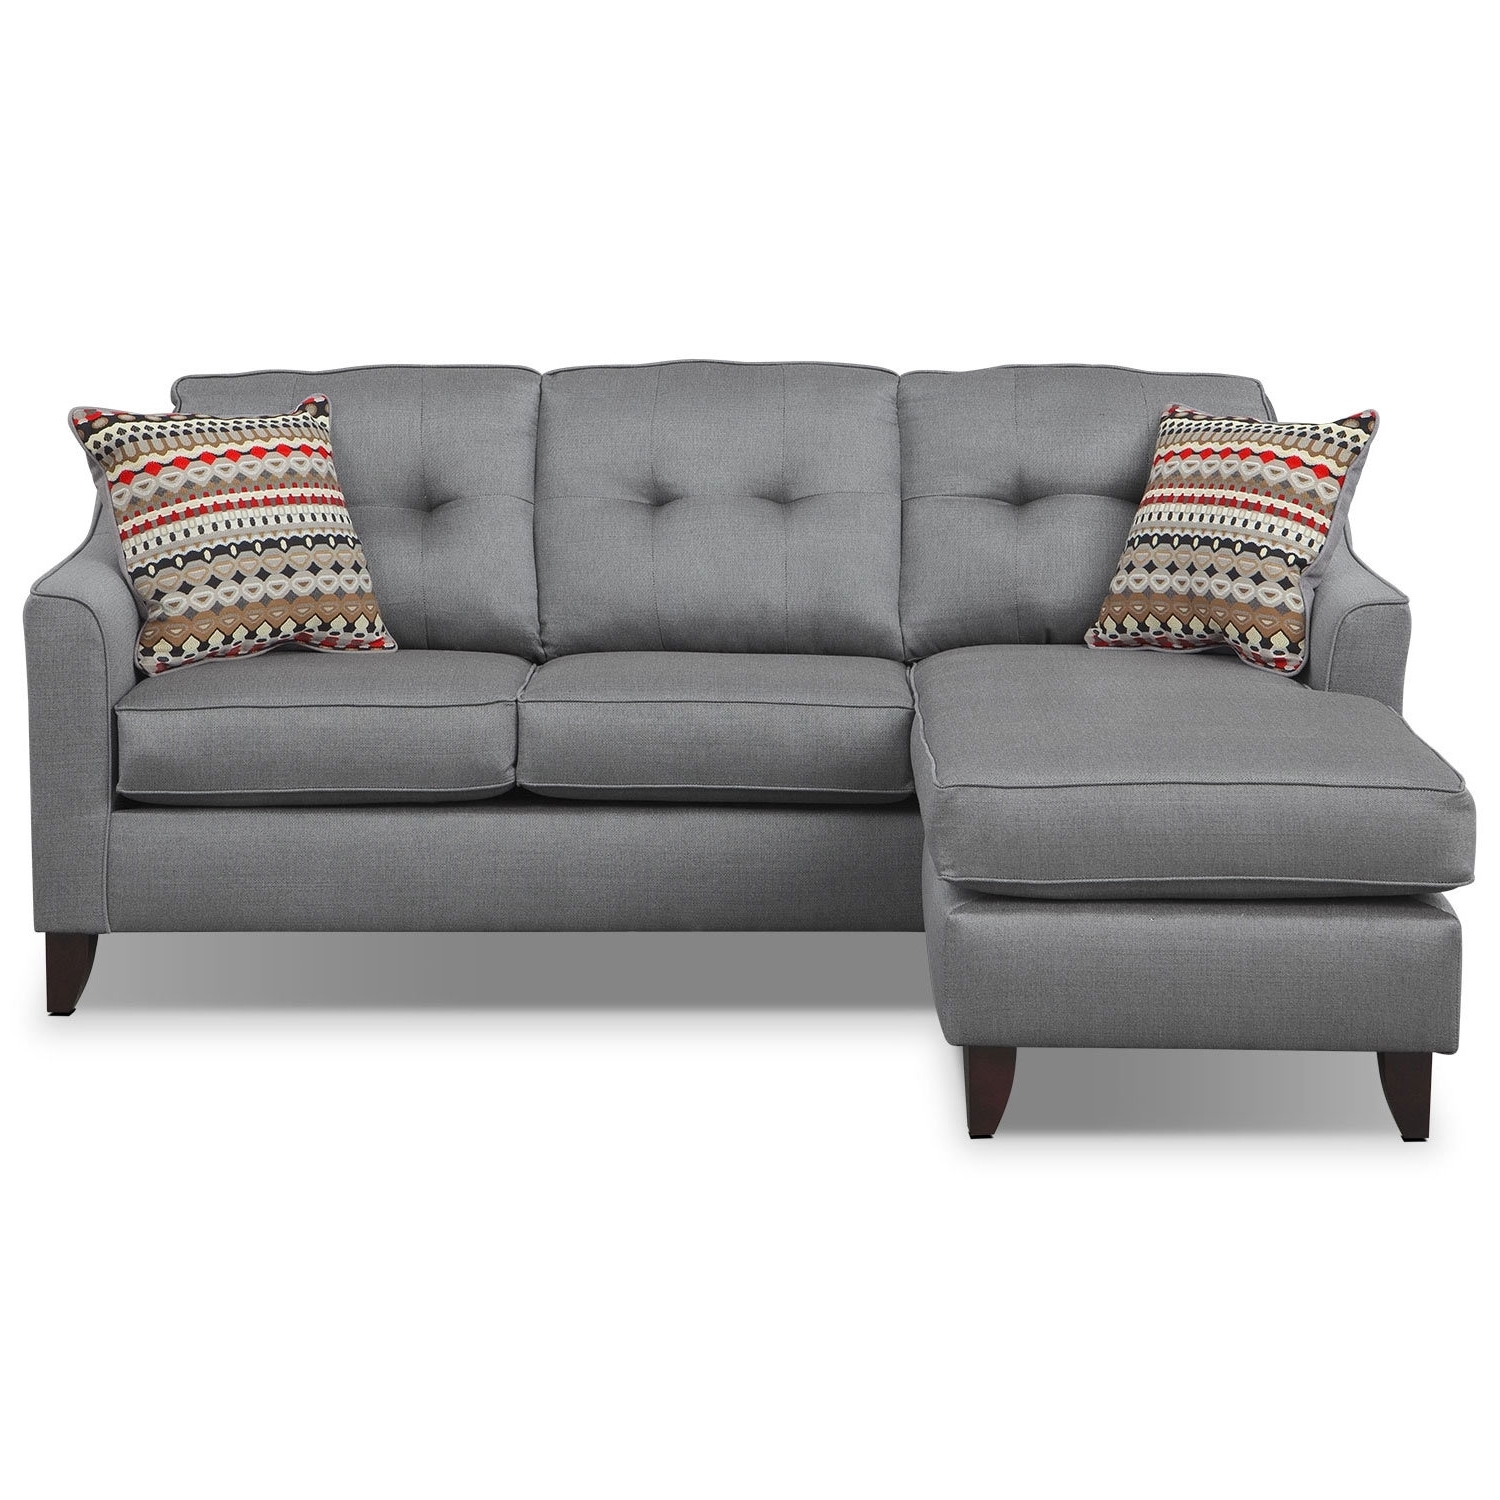 Favorite Sofas And More Knoxville Tn 83 With Sofas And More Knoxville Tn With Regard To Knoxville Tn Sectional Sofas (View 15 of 20)